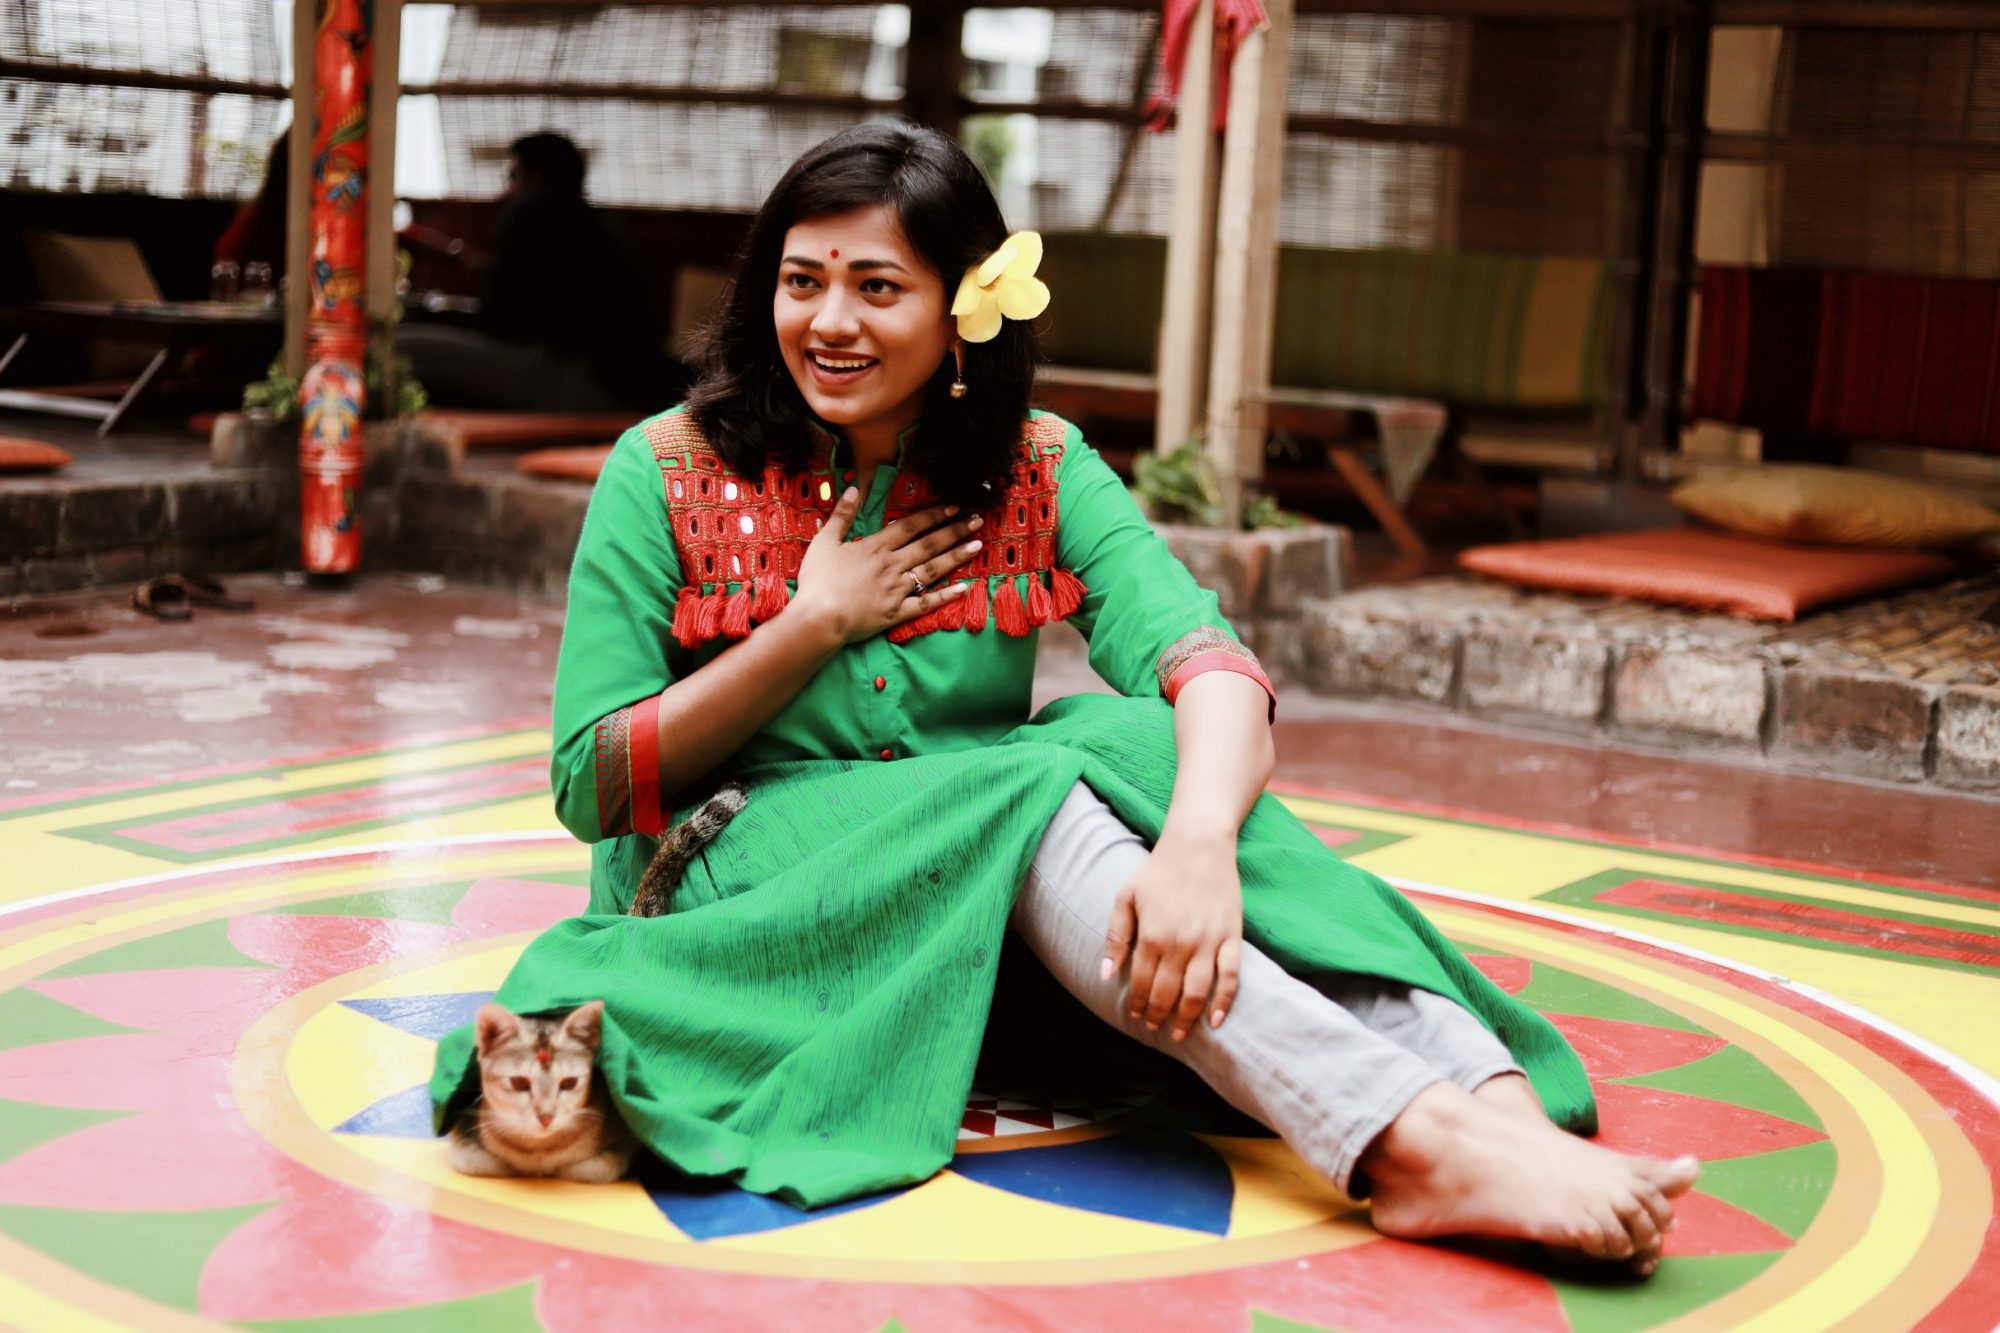 Bangladesh Fashion Blogger at Jatra Biroti Cute Cat under Salwar Kameez